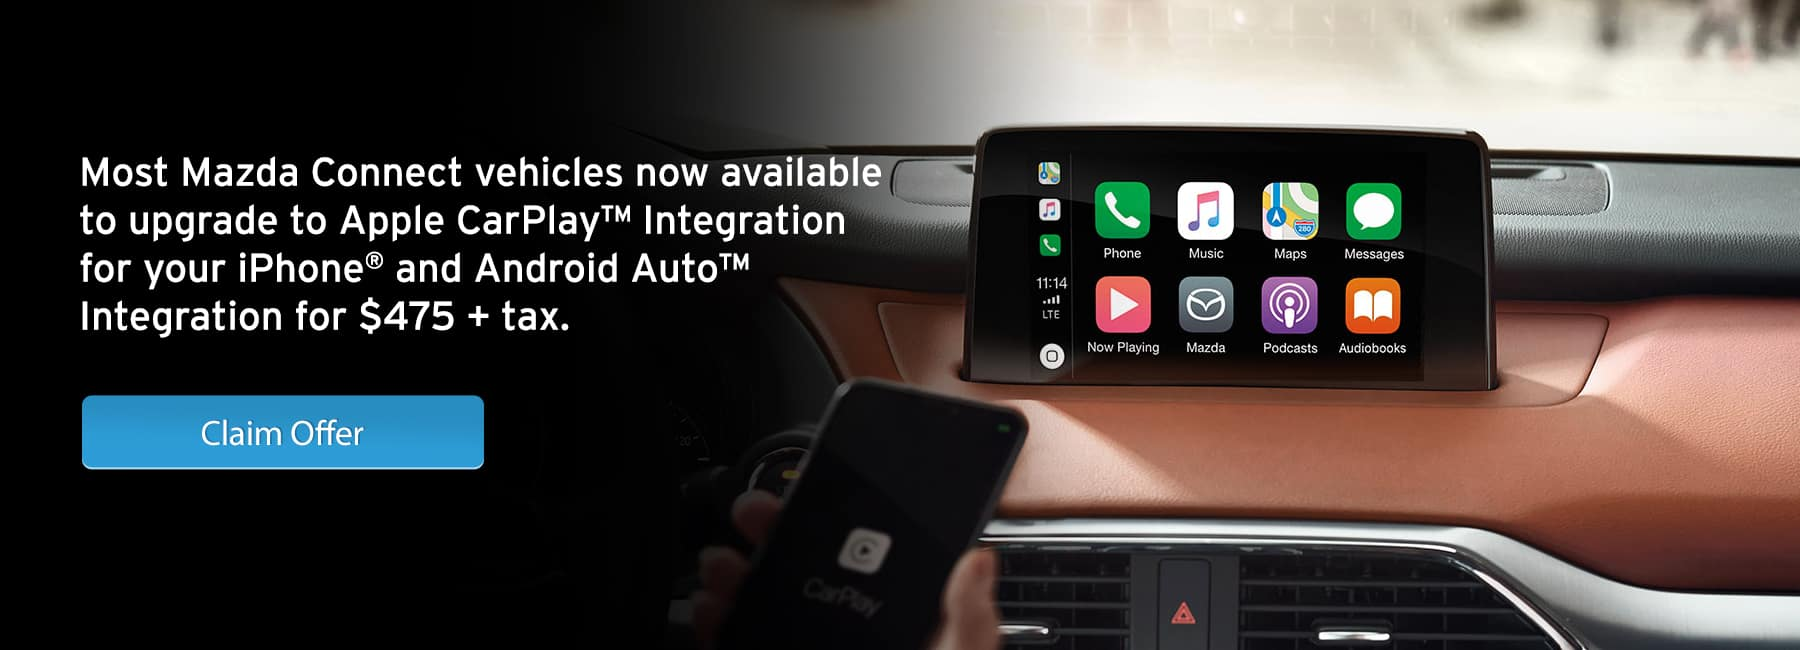 Android Auto / Apple CarPlay